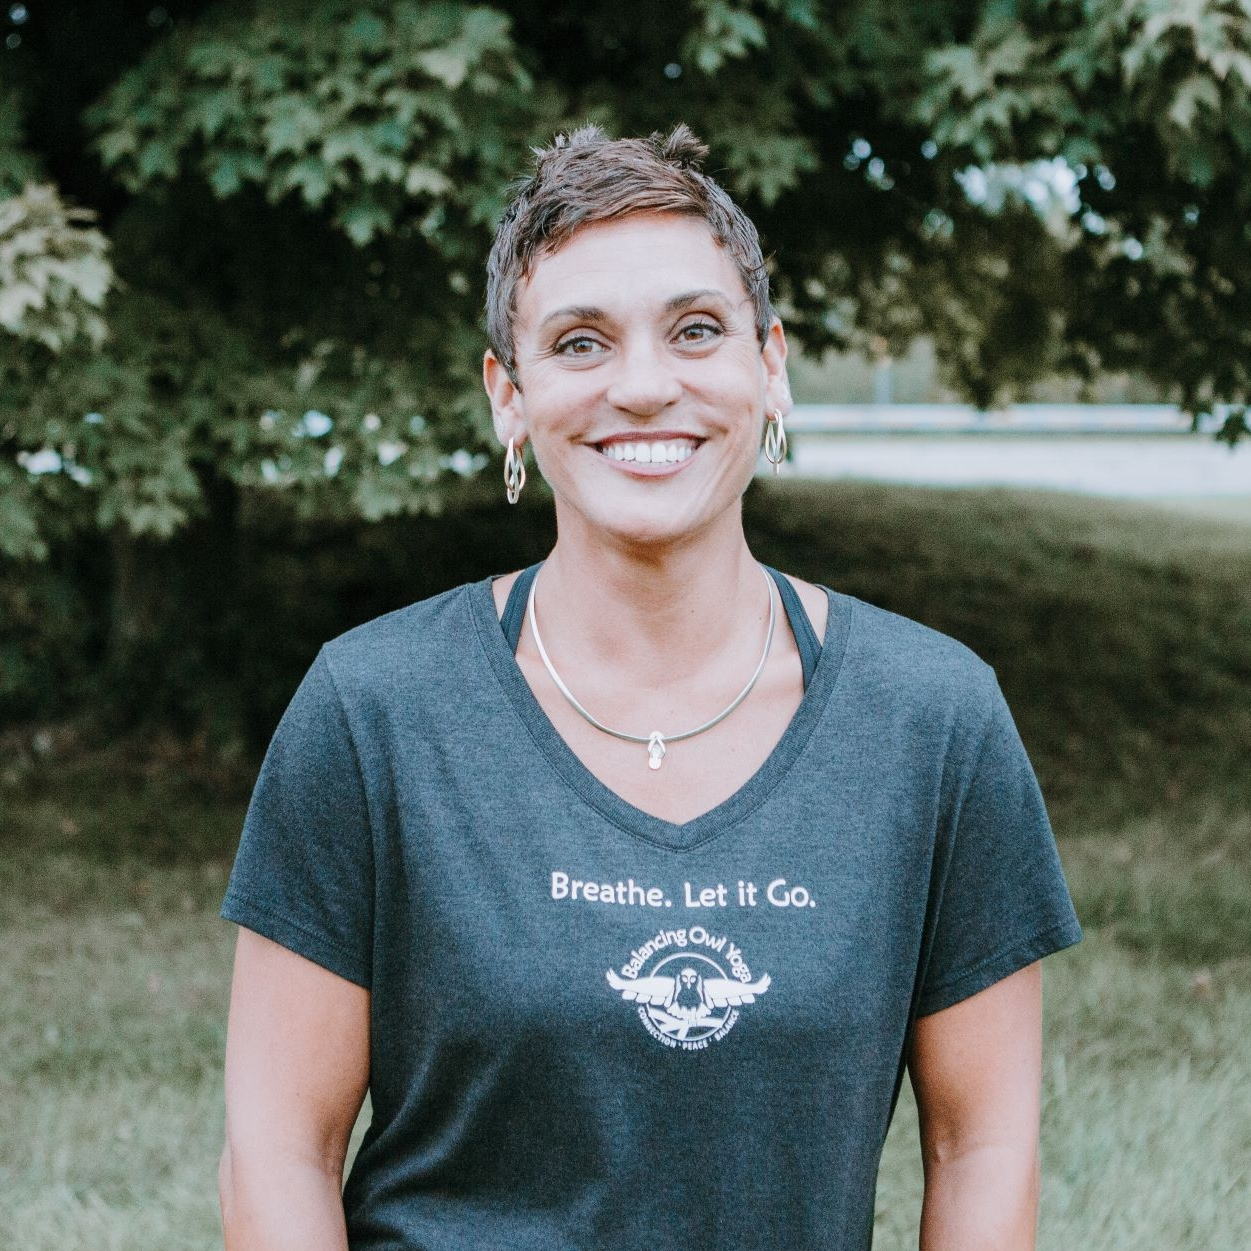 Kelly Schulze, RYT200, is an instructor at Balancing Owl Yoga and had back surgery last month. She is home recovering and looks forward to getting back into the studio in 2019.